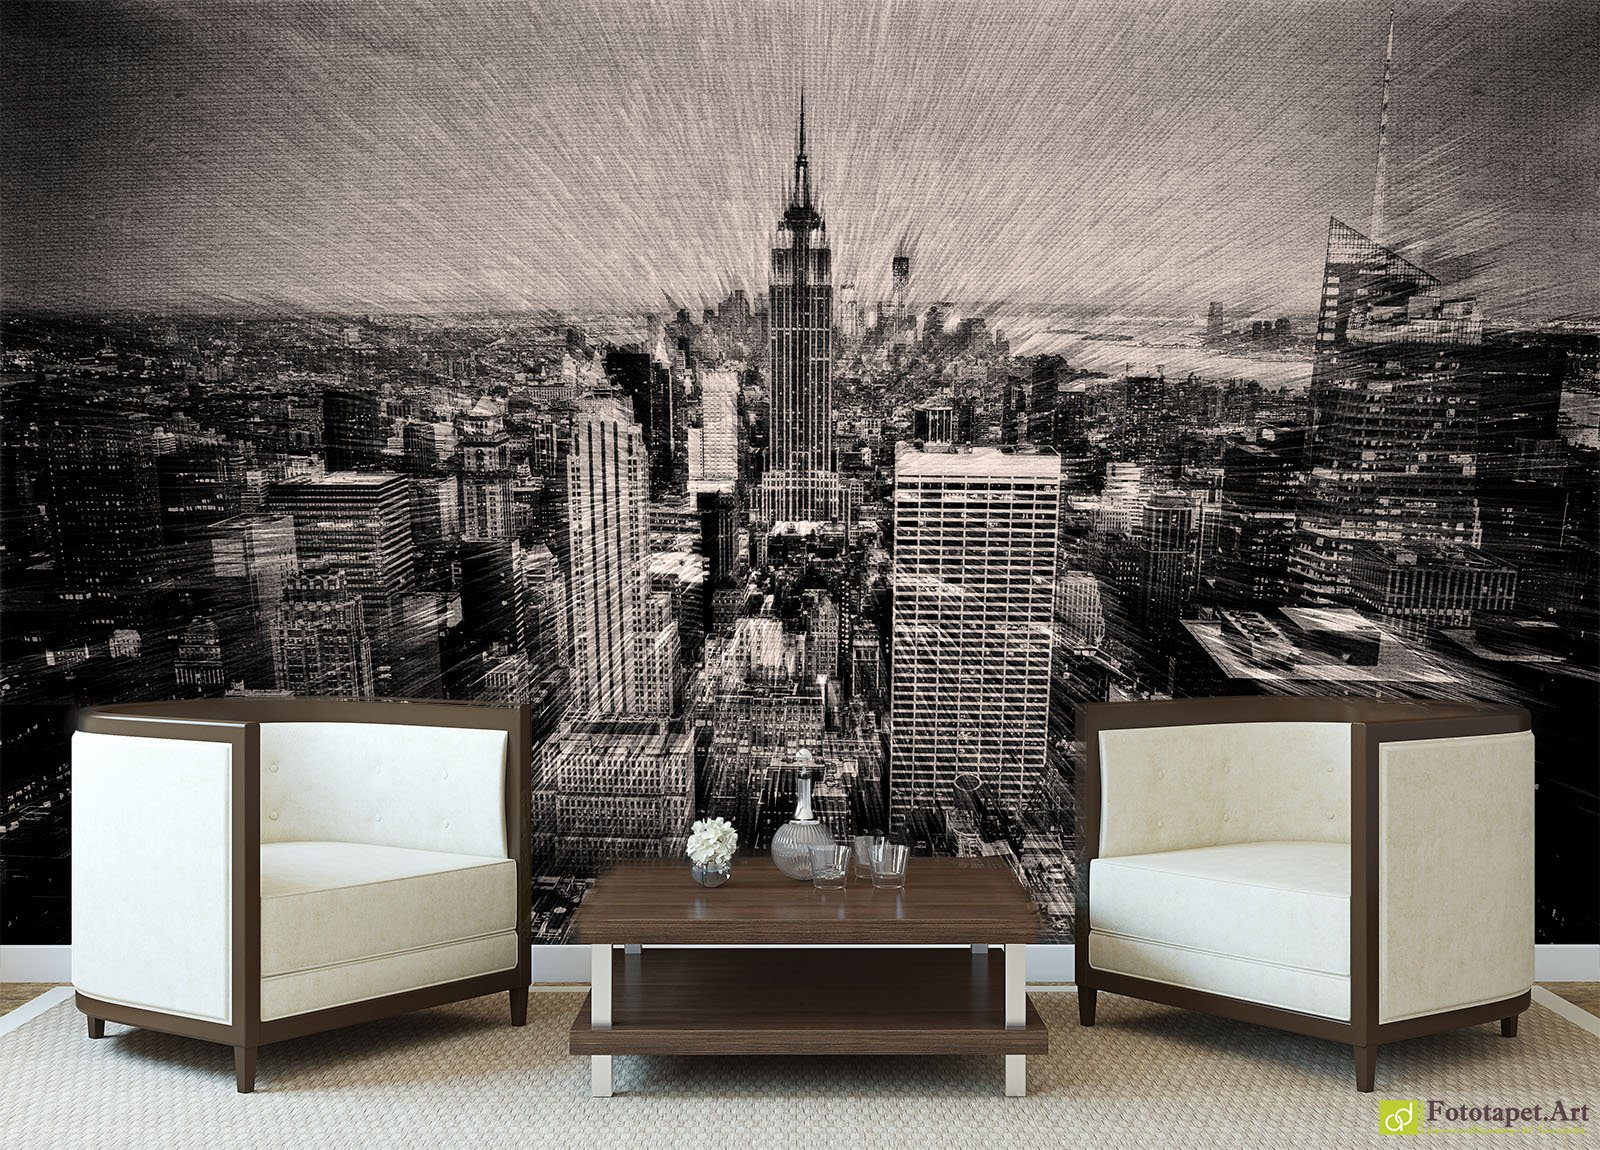 Retro wallpaper vintage wall murals the vintage style night retro wallpaper vintage wall murals the vintage style night town2 fototapett extraordinary prints are prepared only in safe odorless and 100 amipublicfo Gallery